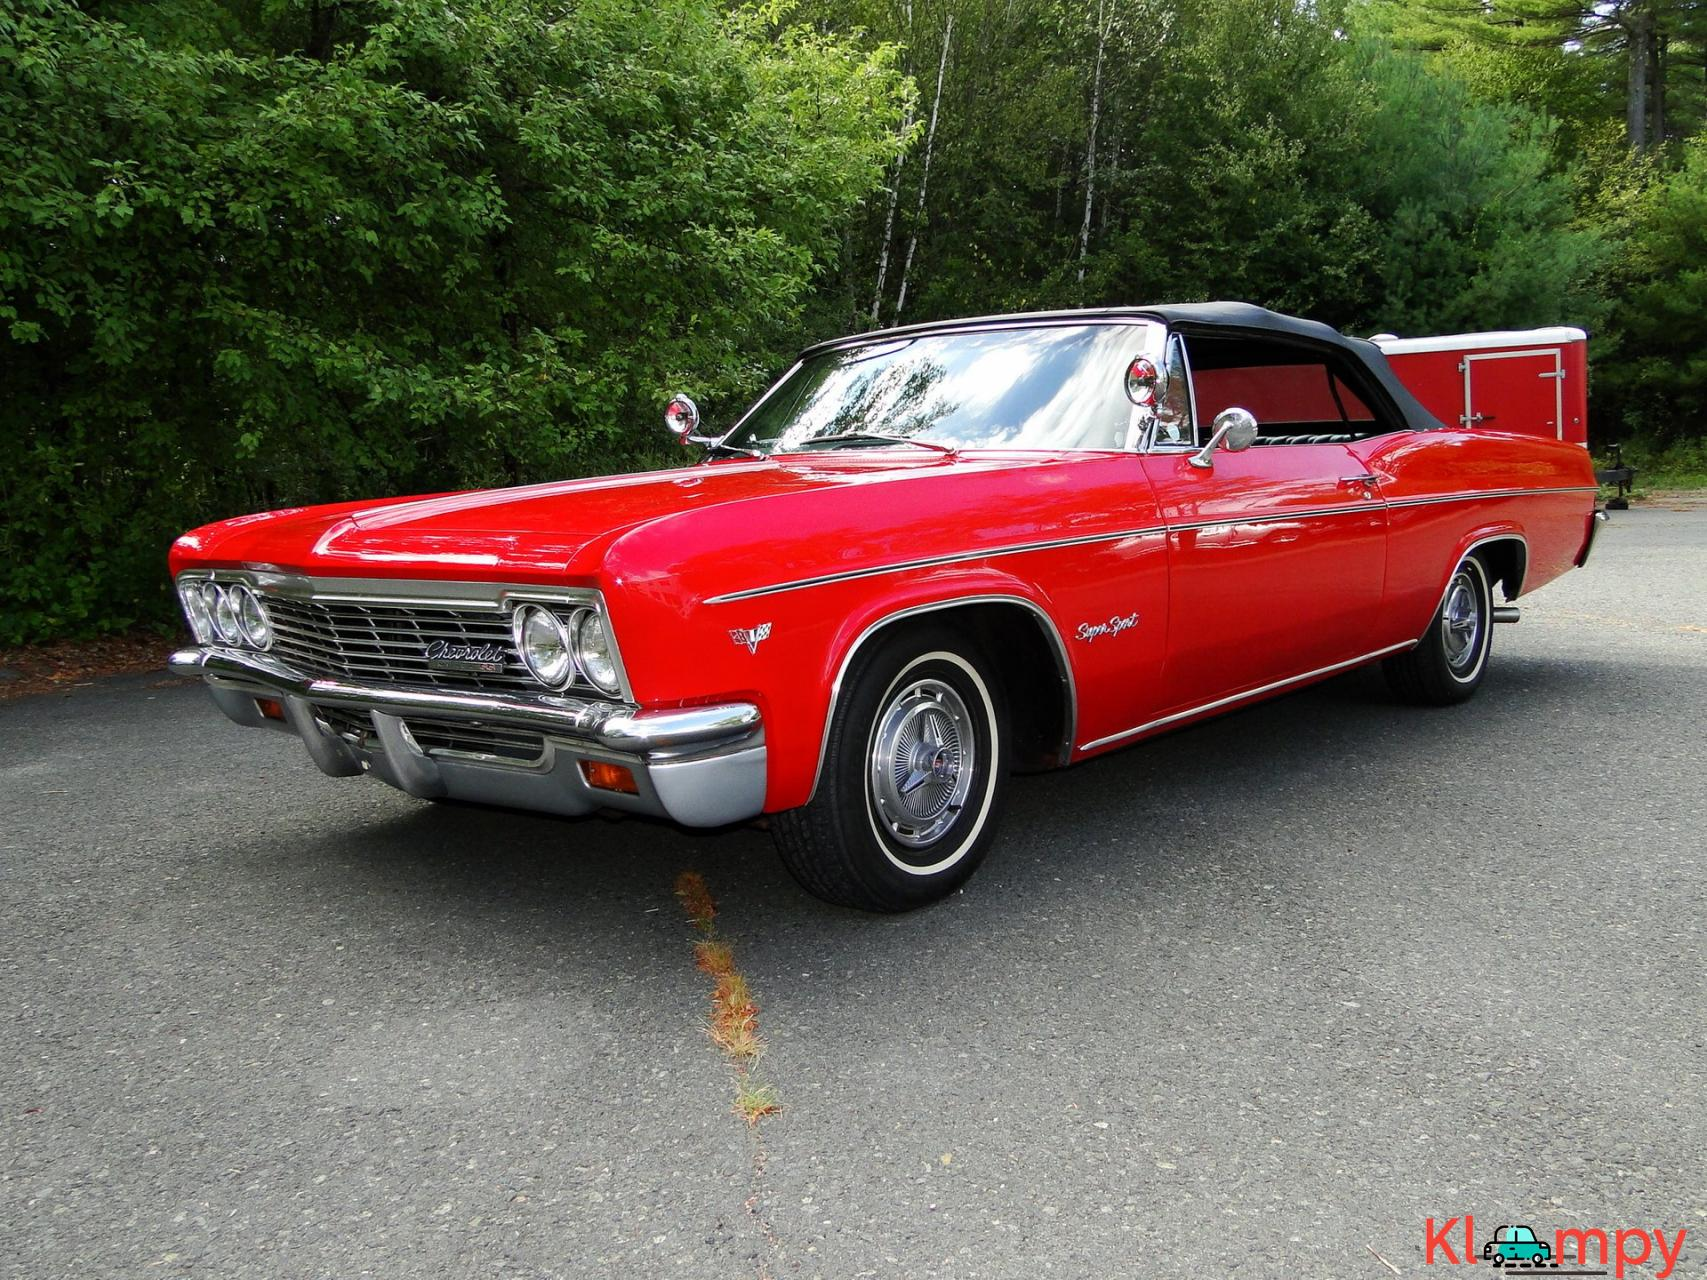 1966 Chevrolet Impala SS Convertible Regal Red V8 - 10/23